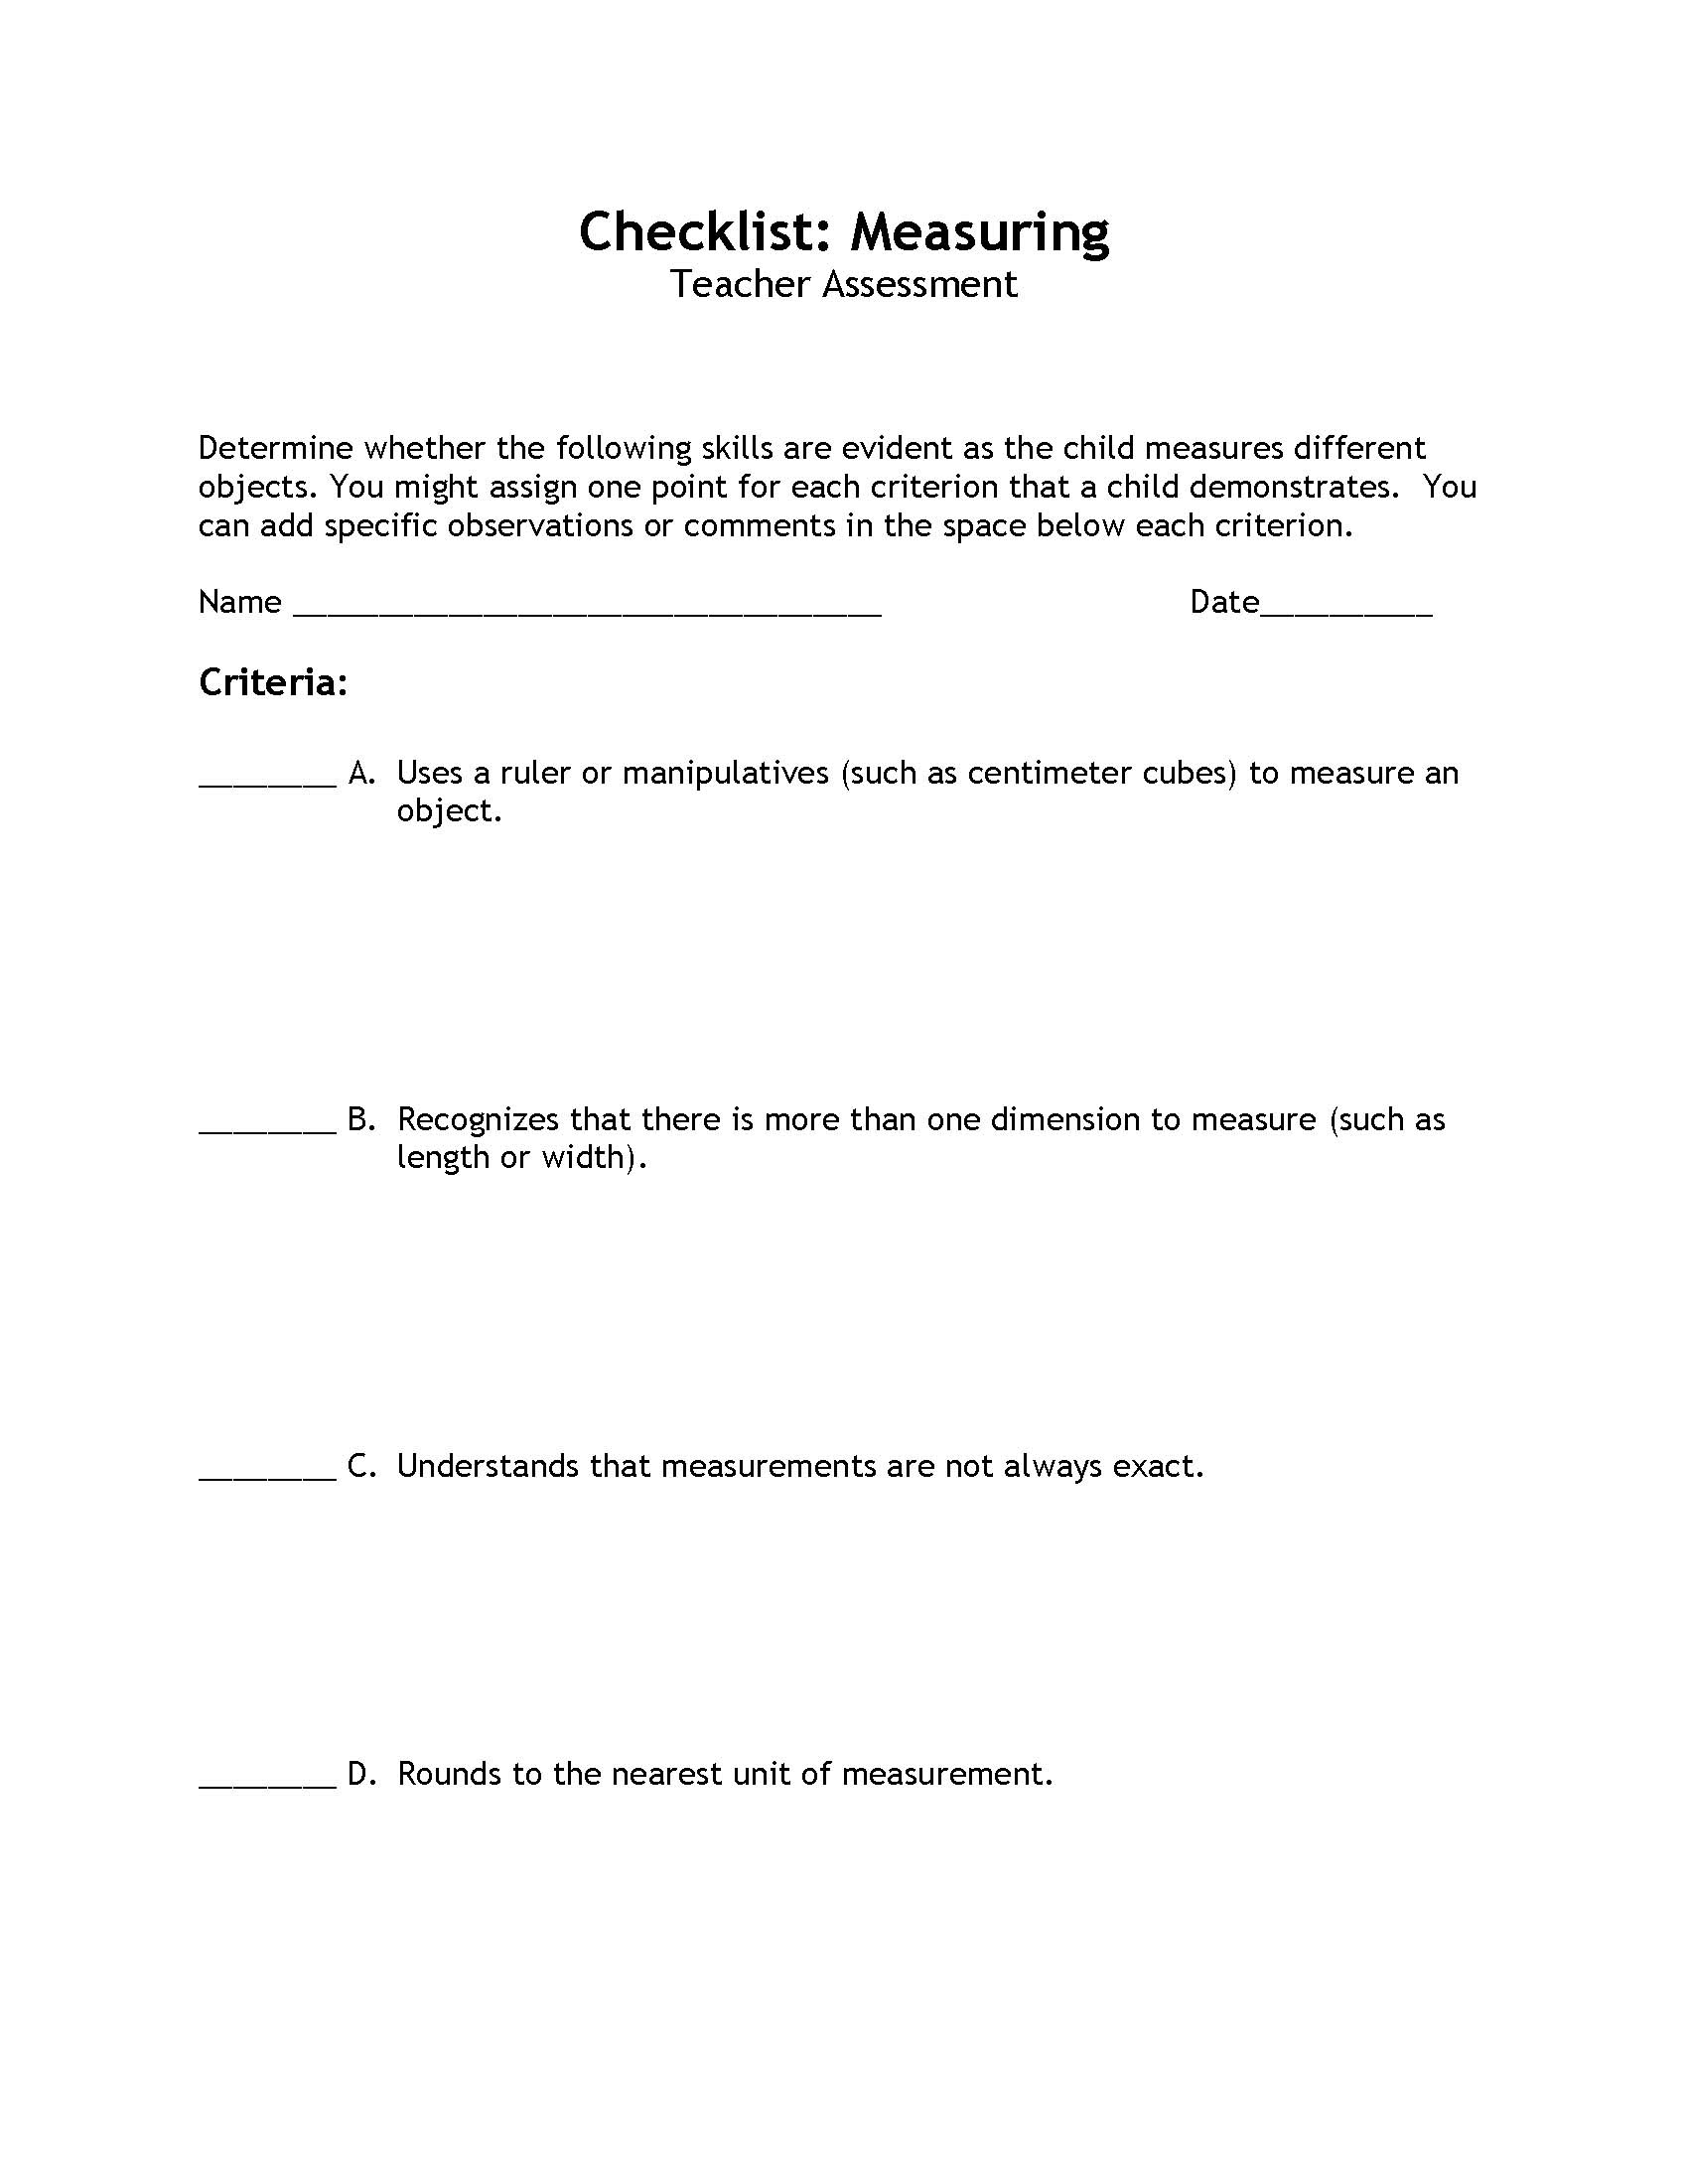 Science and Children Online Connections – Change Plan Worksheet